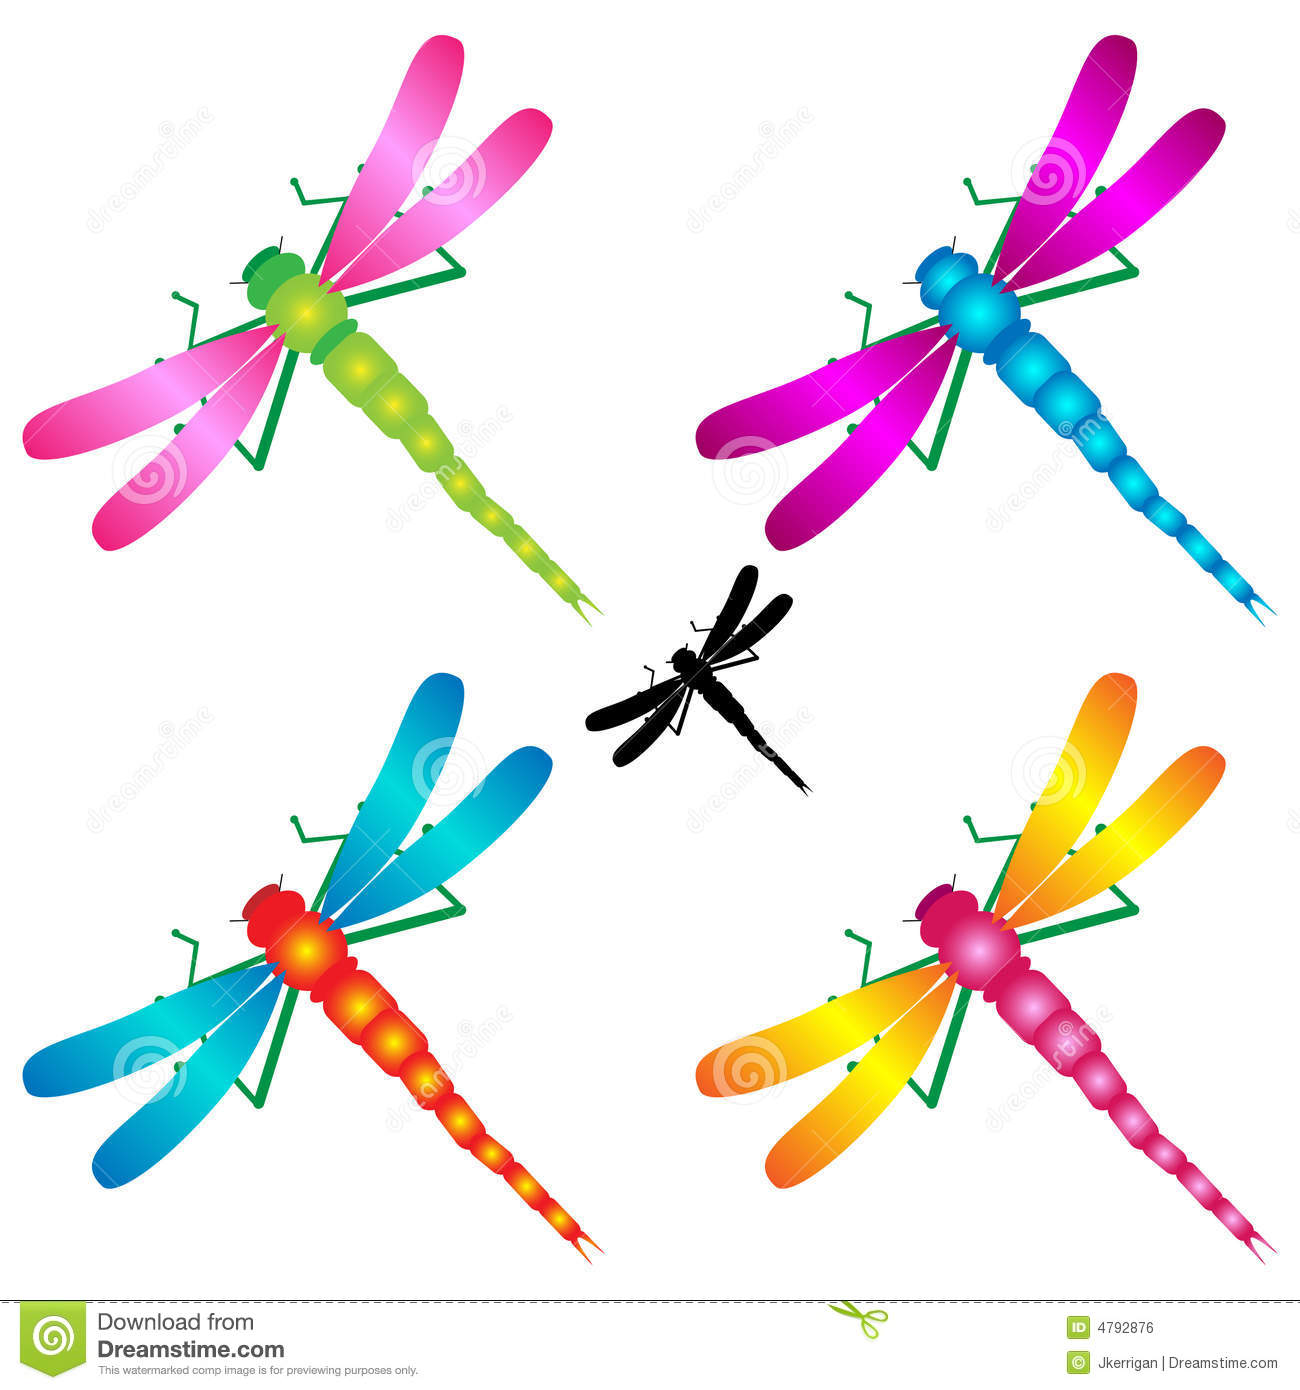 dragonflies stock vector image of shape  stylized  purple free dragonfly clip art downloads free dragonfly clip art images no background